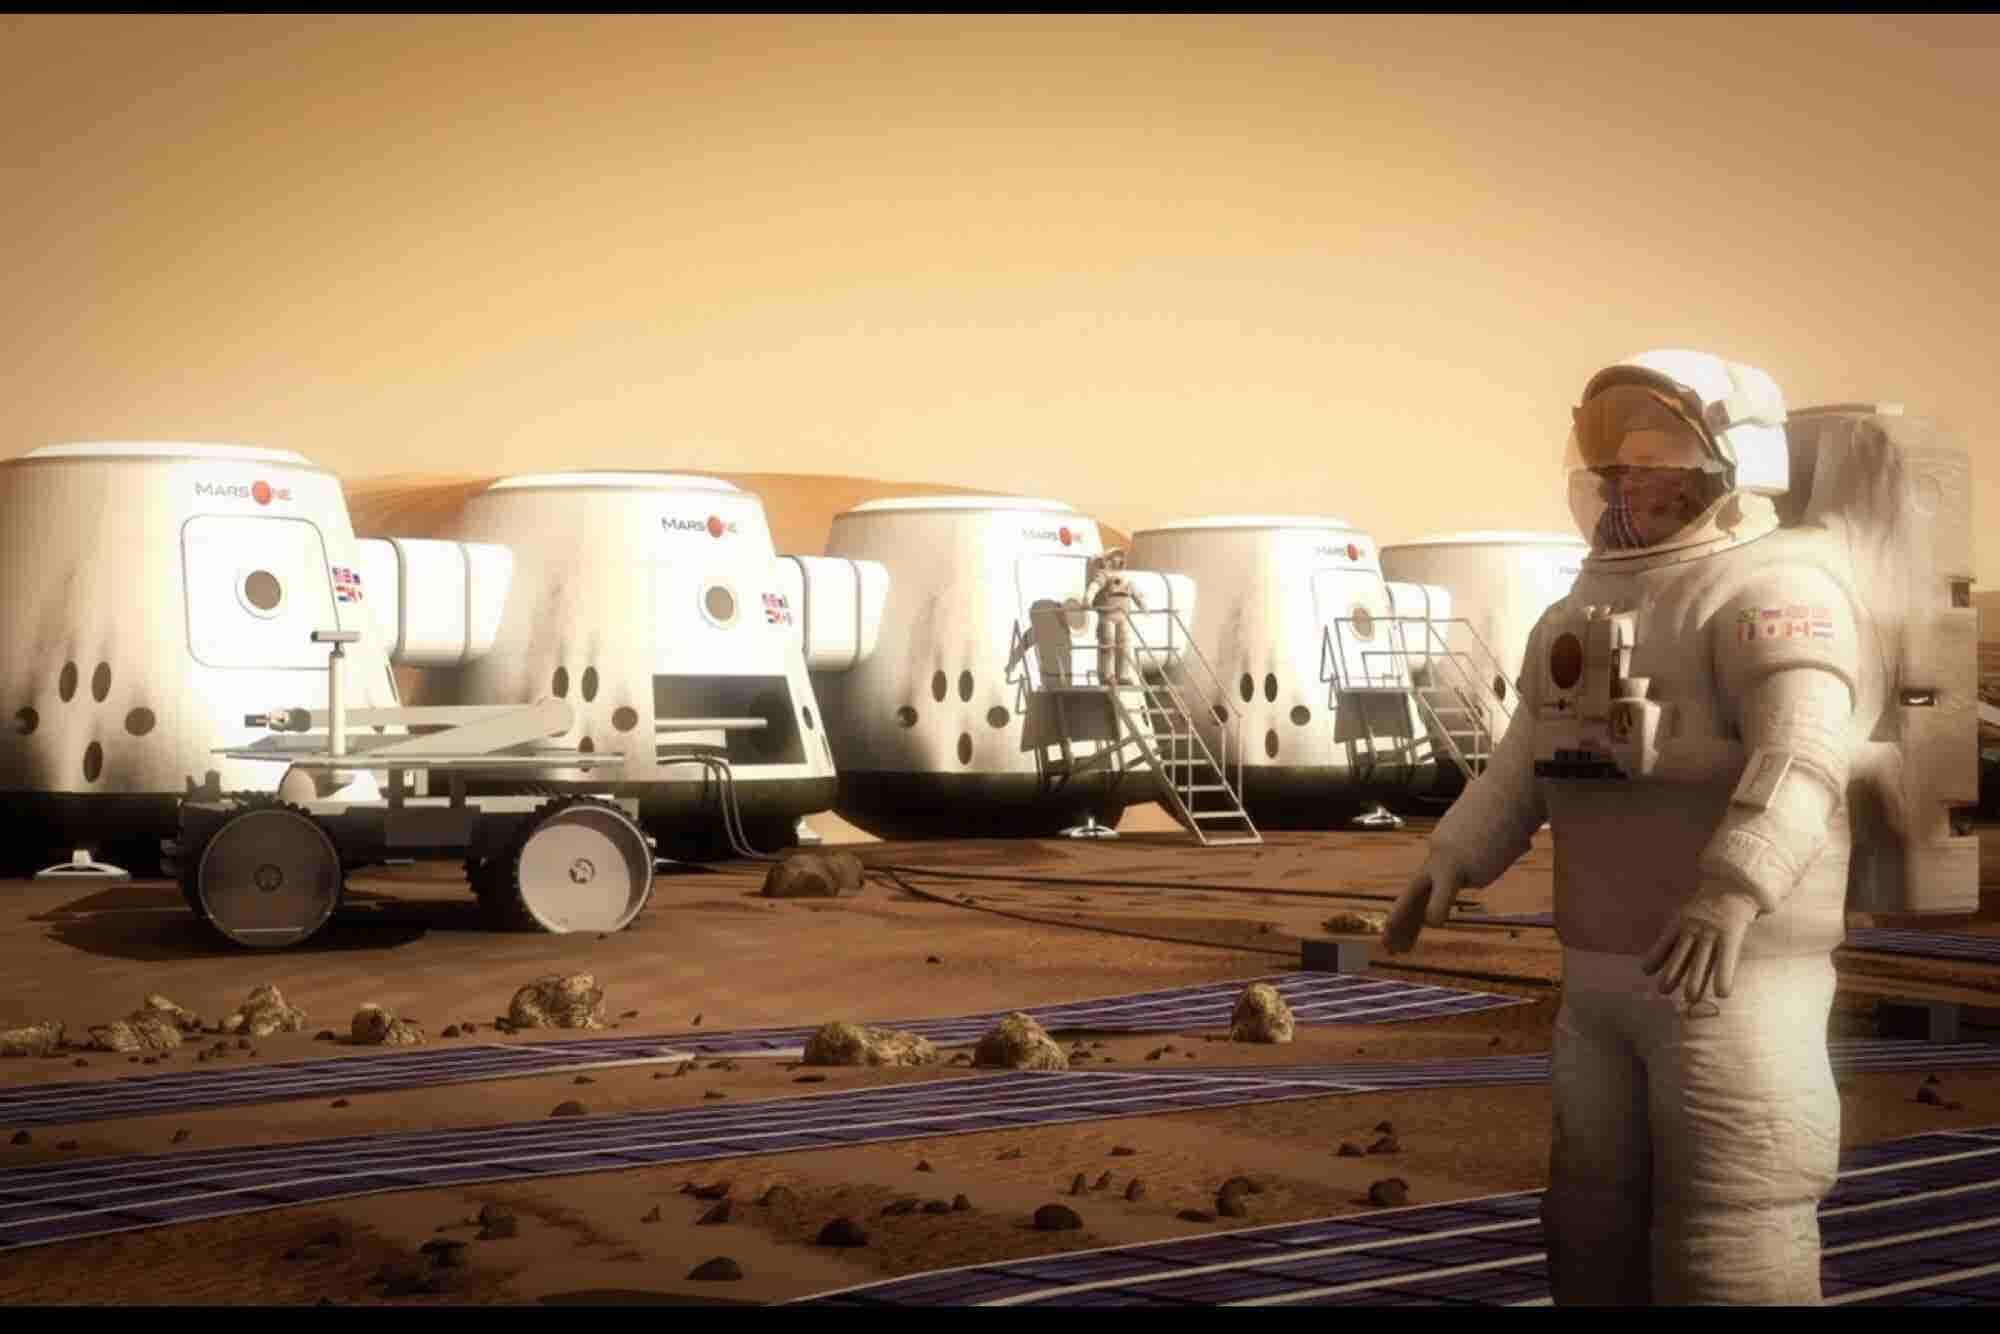 The Millionaire Entrepreneur Offering a One-Way Ticket to Mars